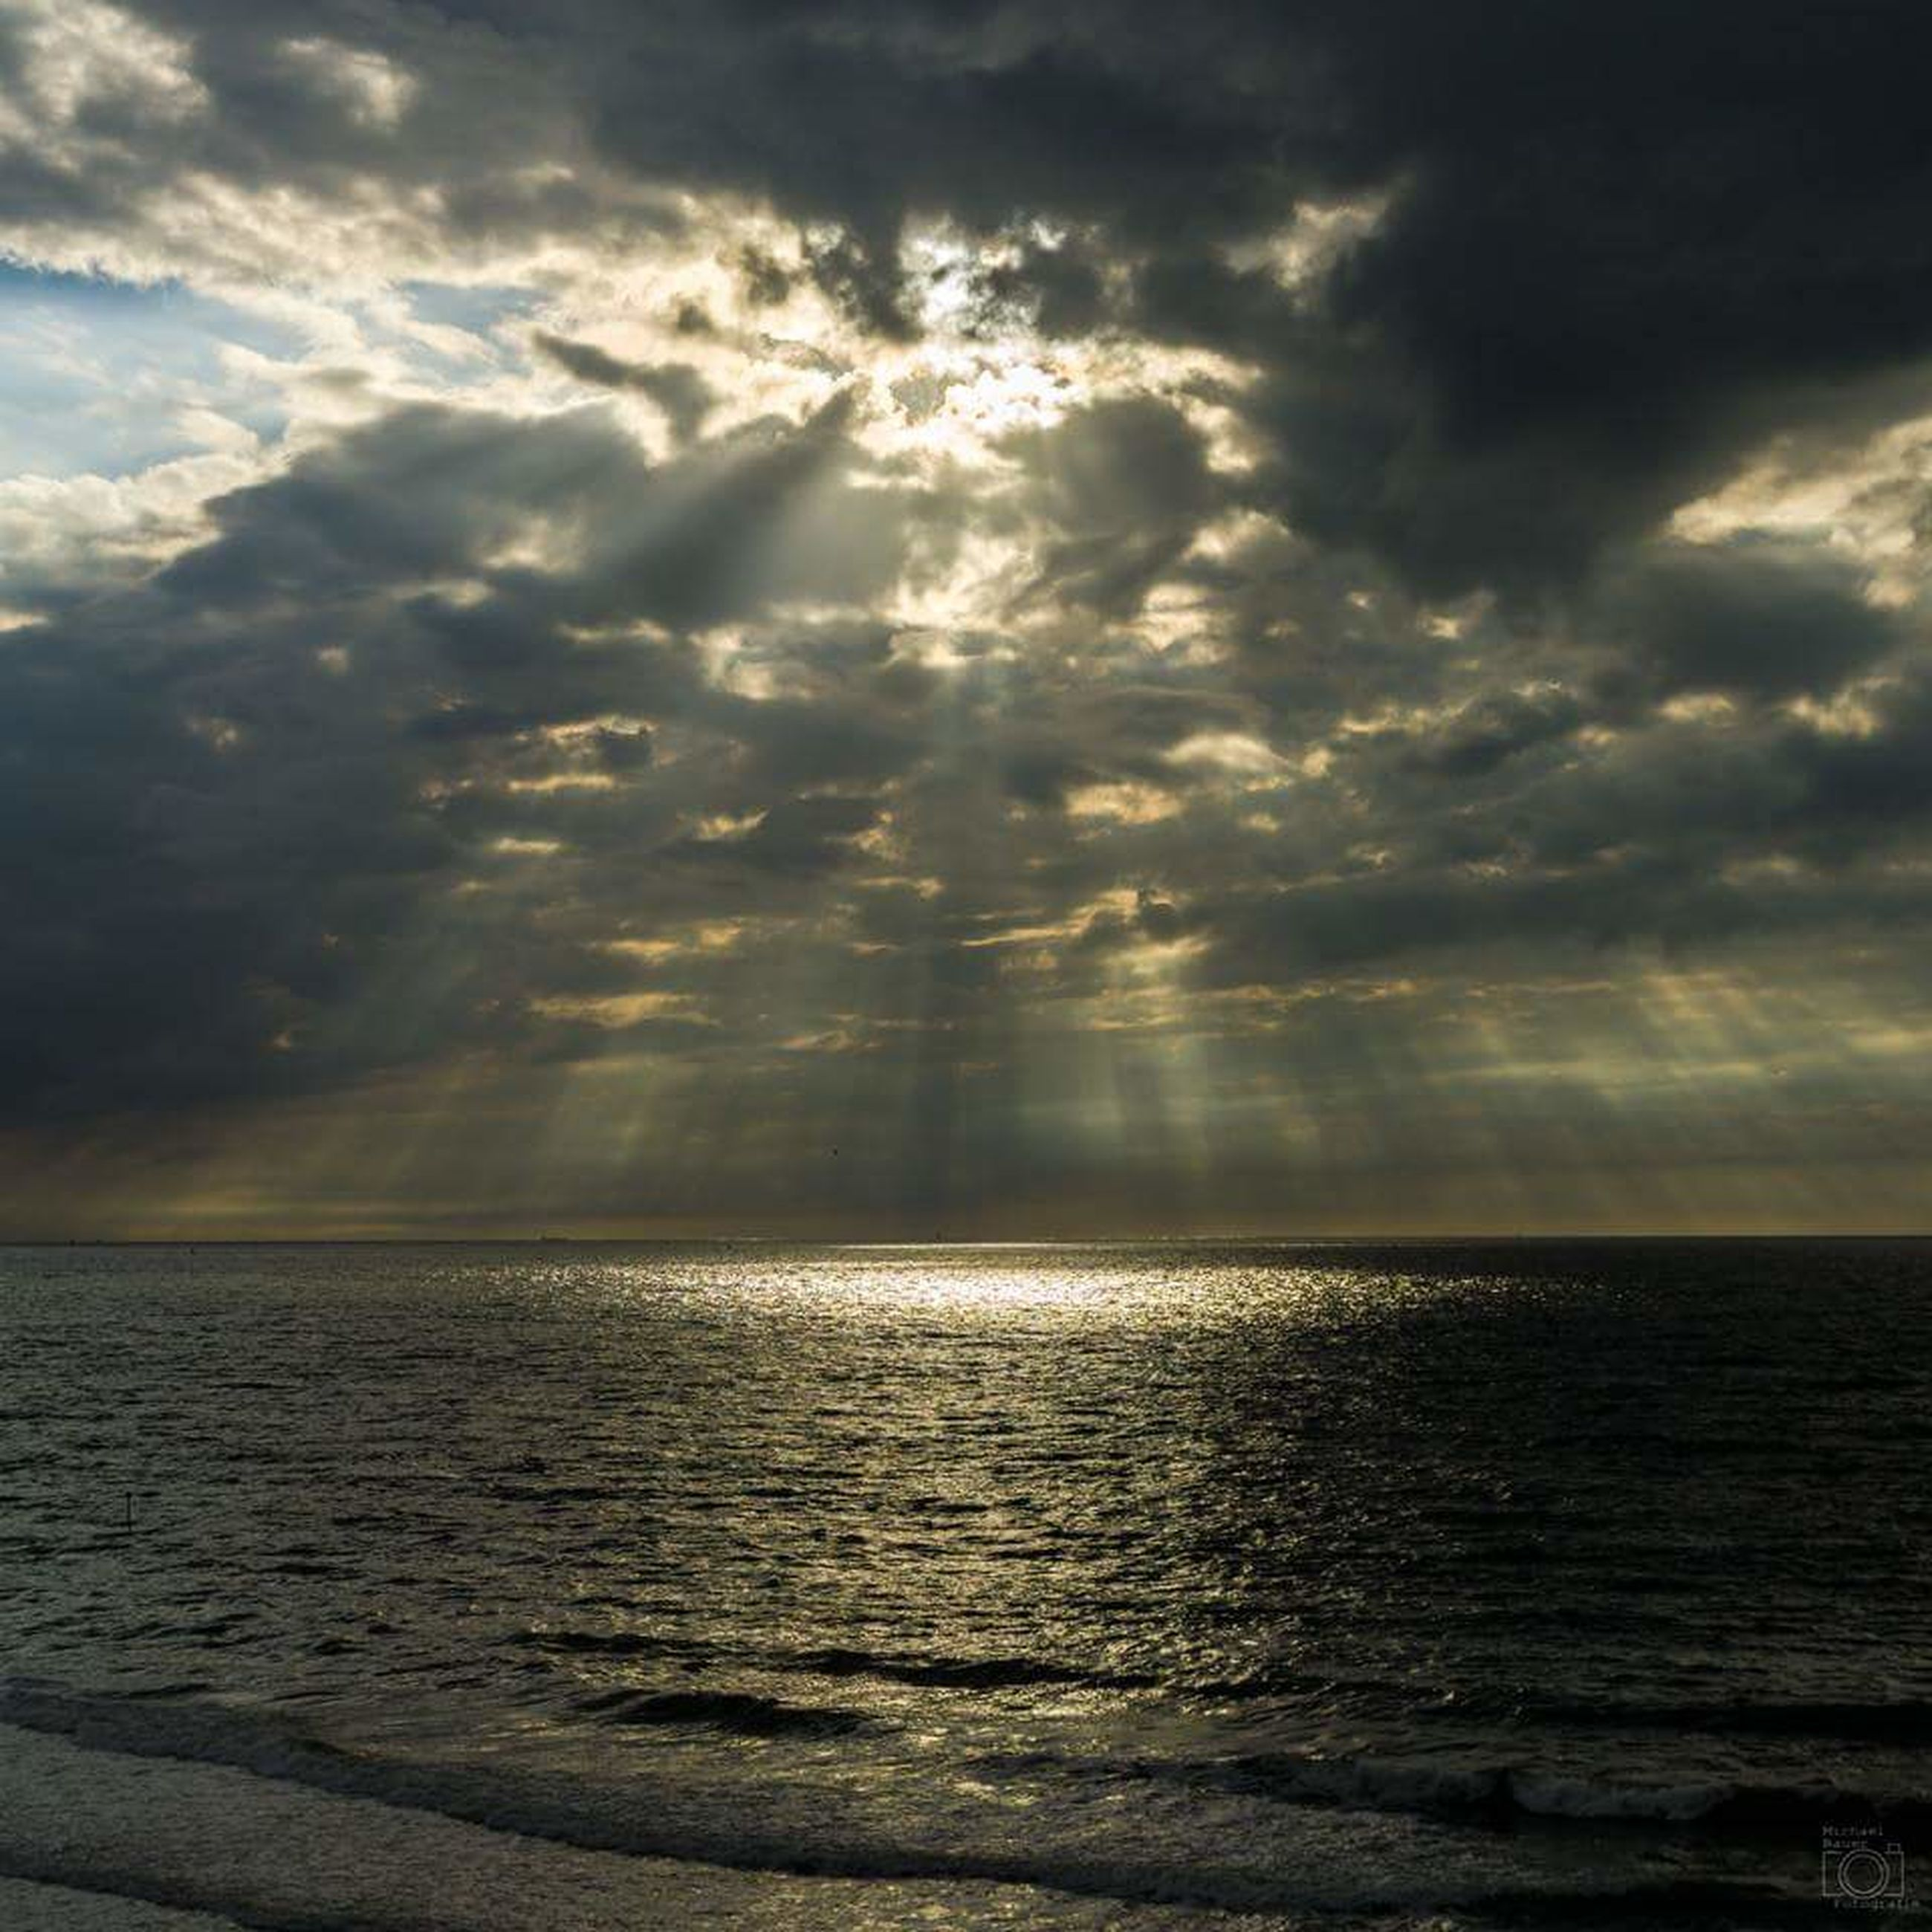 sea, tranquil scene, scenics, cloud - sky, beauty in nature, tranquility, nature, sunbeam, horizon over water, water, idyllic, sky, no people, outdoors, reflection, sunlight, beach, sunset, day, storm cloud